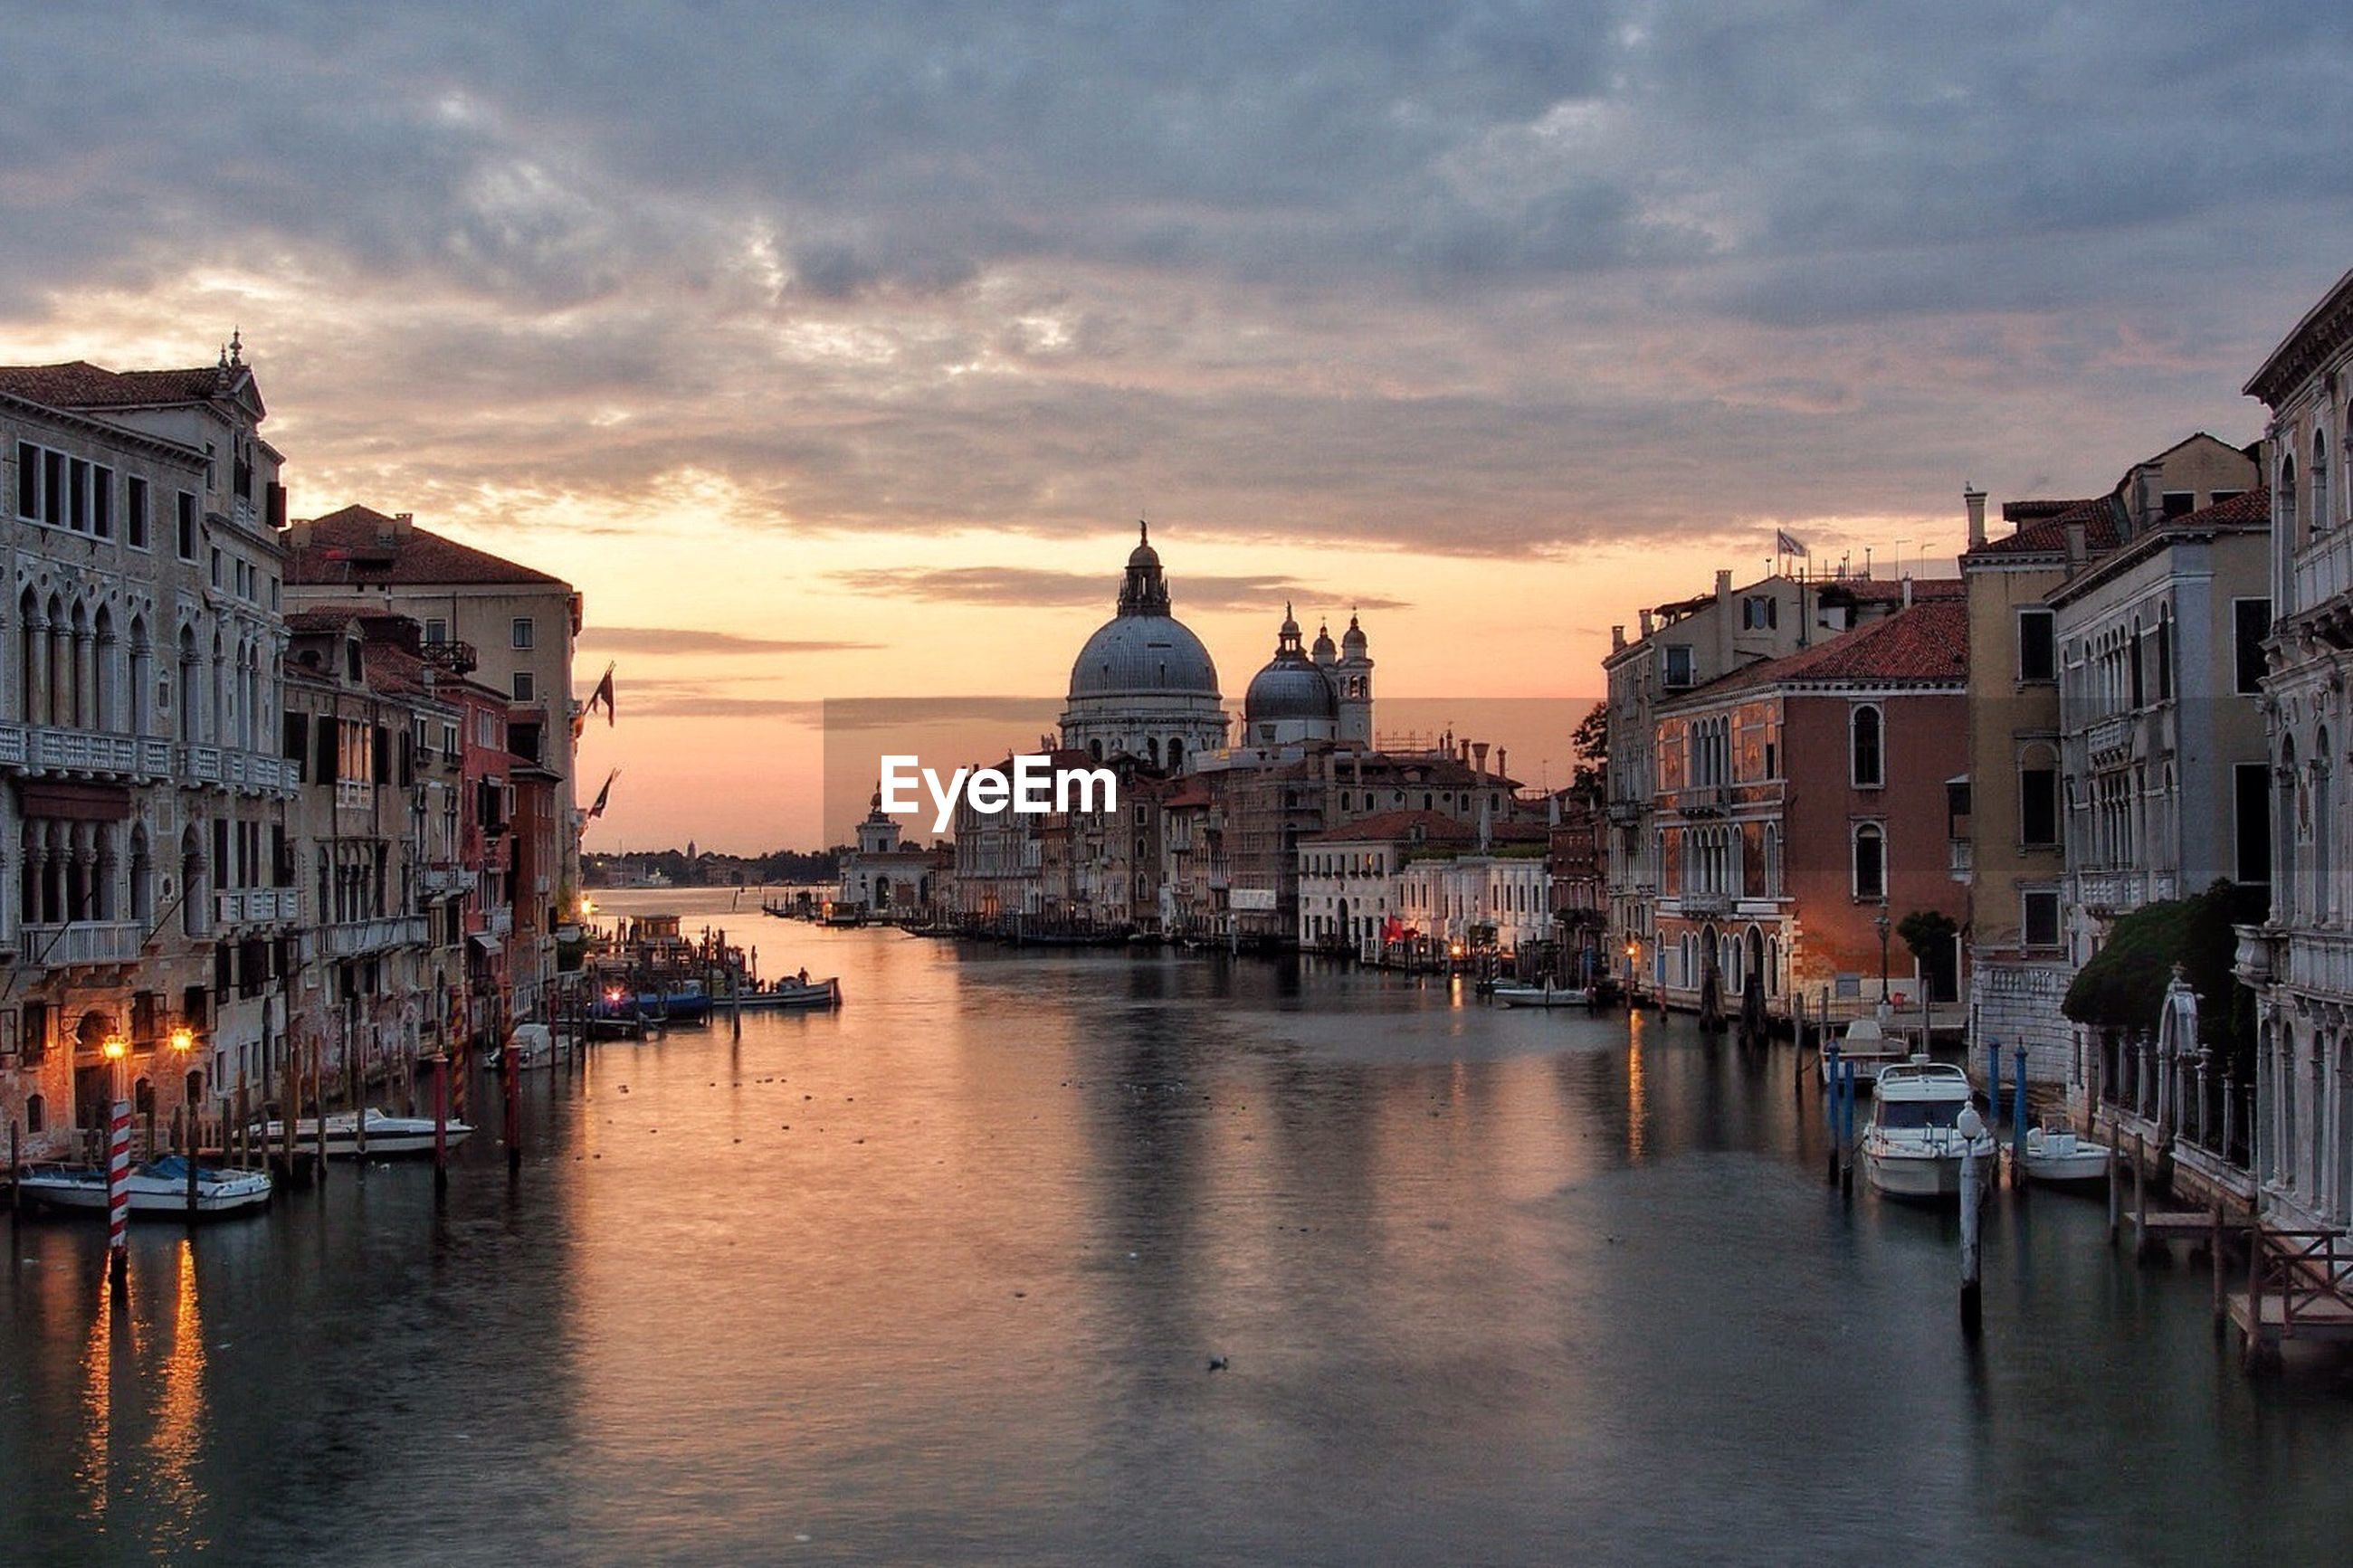 Grand canal by santa maria della salute against cloudy sky during sunset